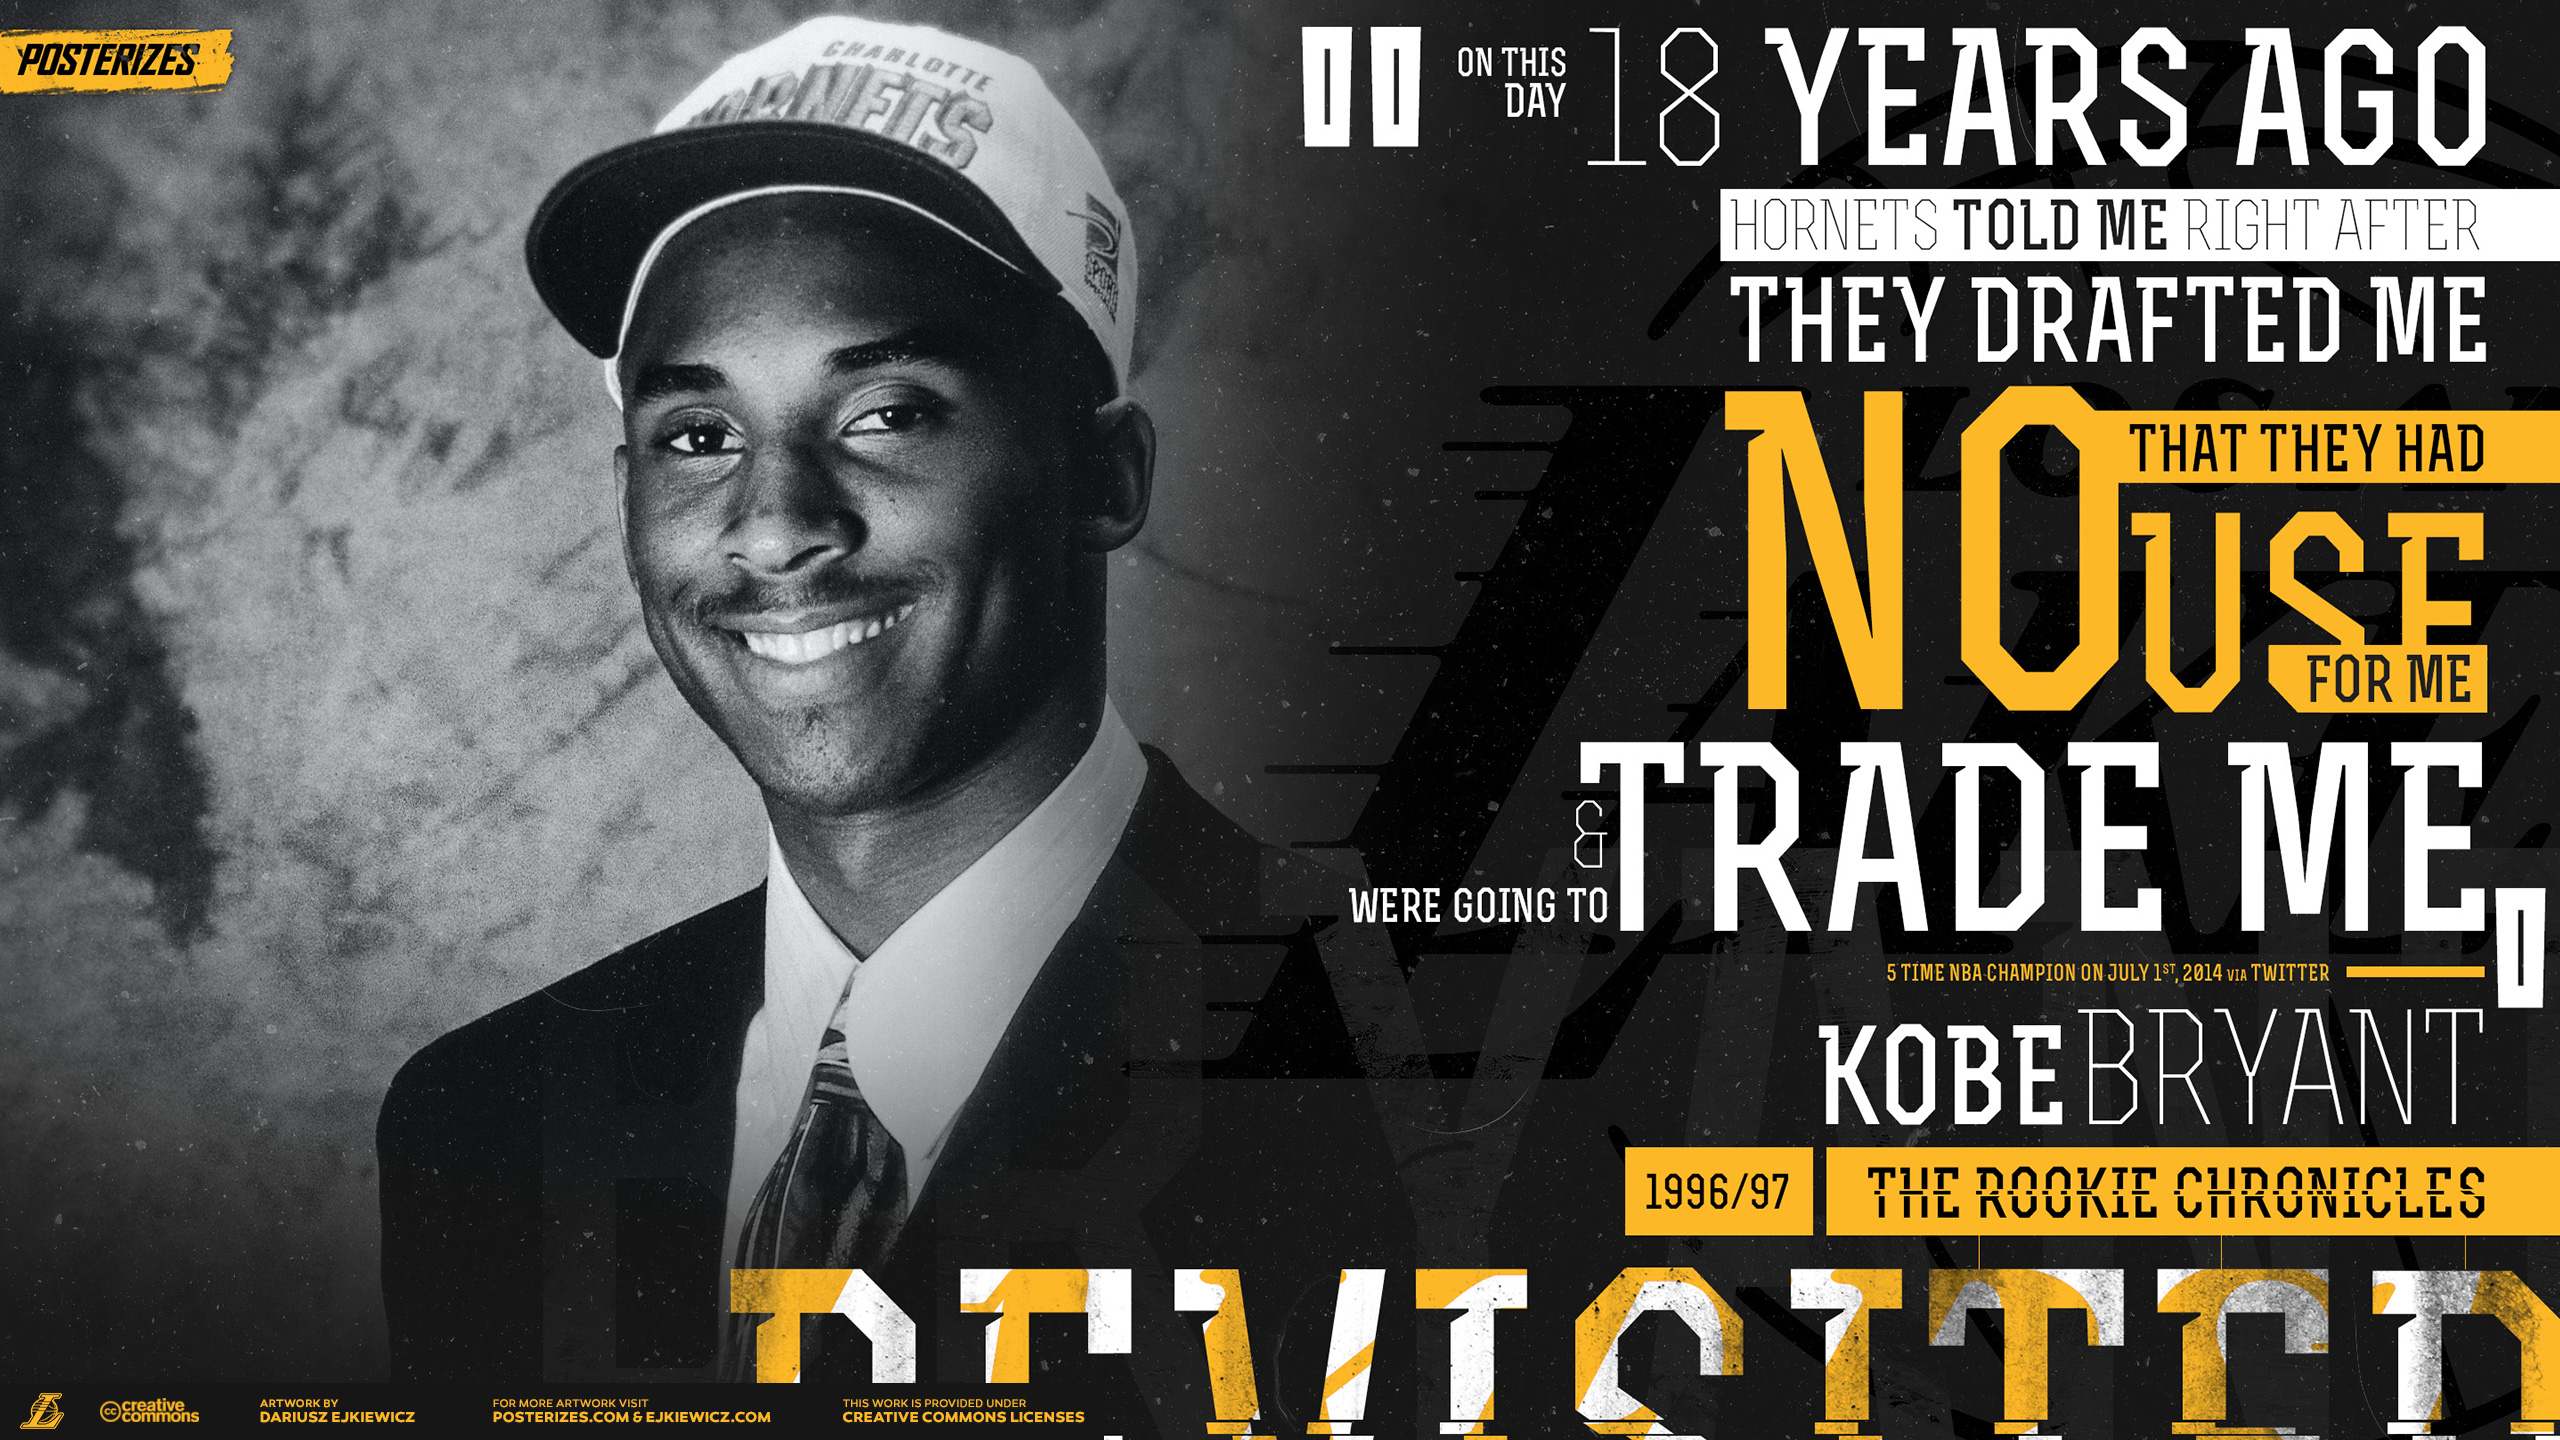 Kobe Bryant 'The Rookie Chronicles'